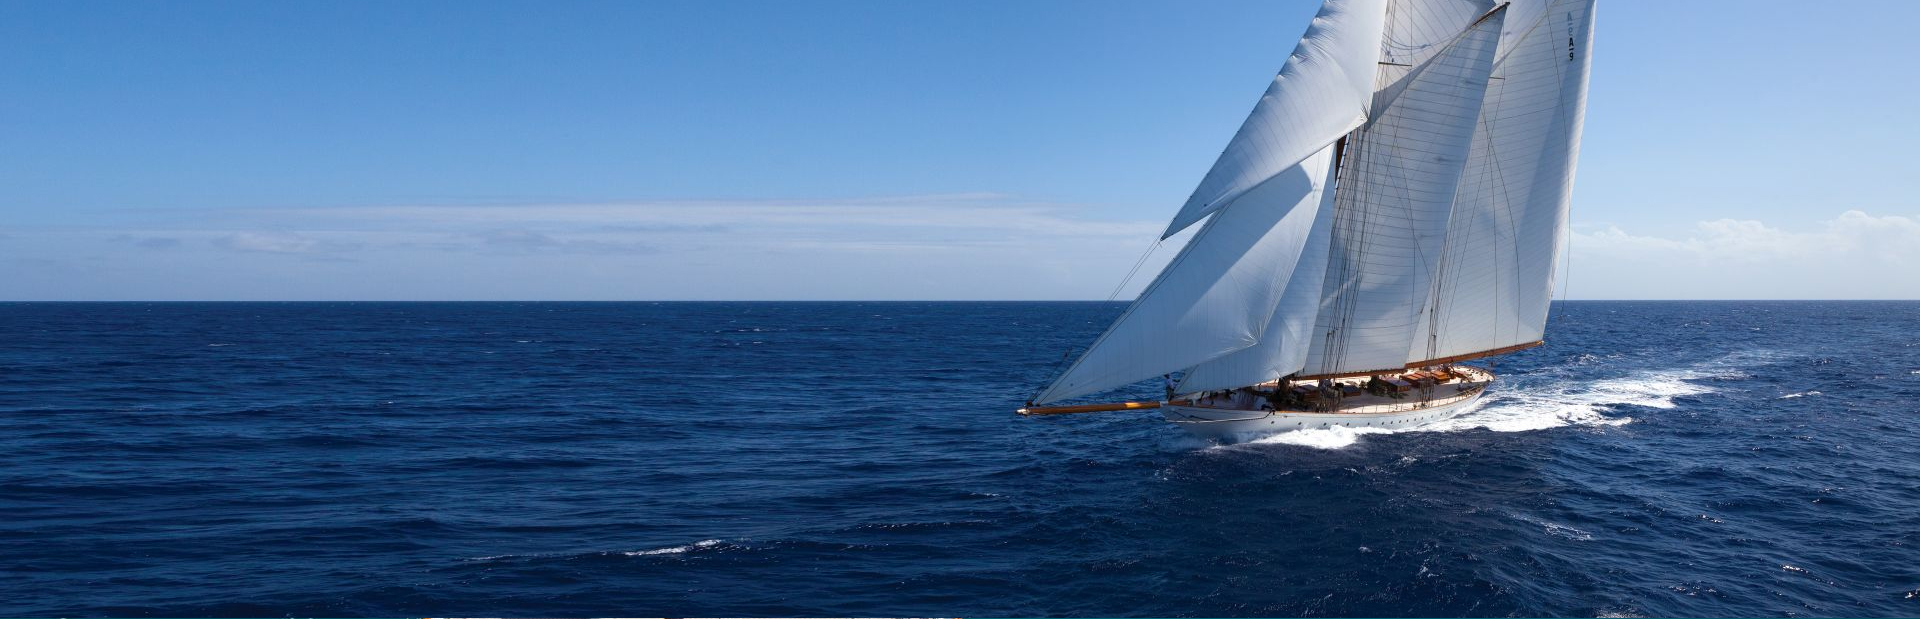 Sailing Yacht Charter Prices